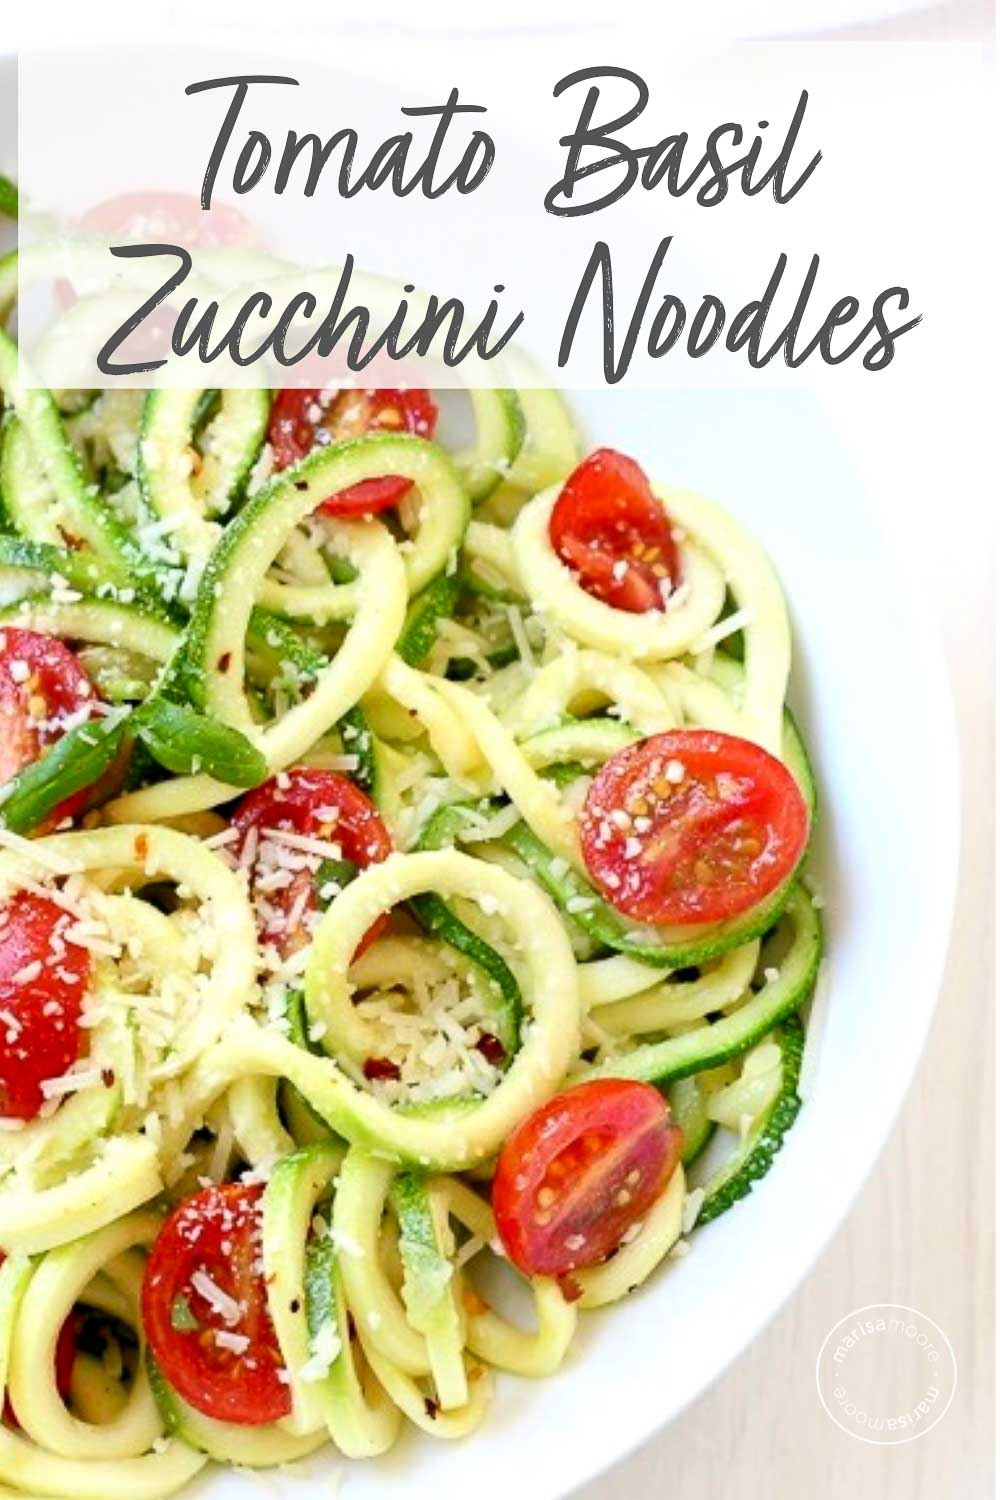 Zucchini Noodles With Tomato Basil And Parmesan Marisa Moore